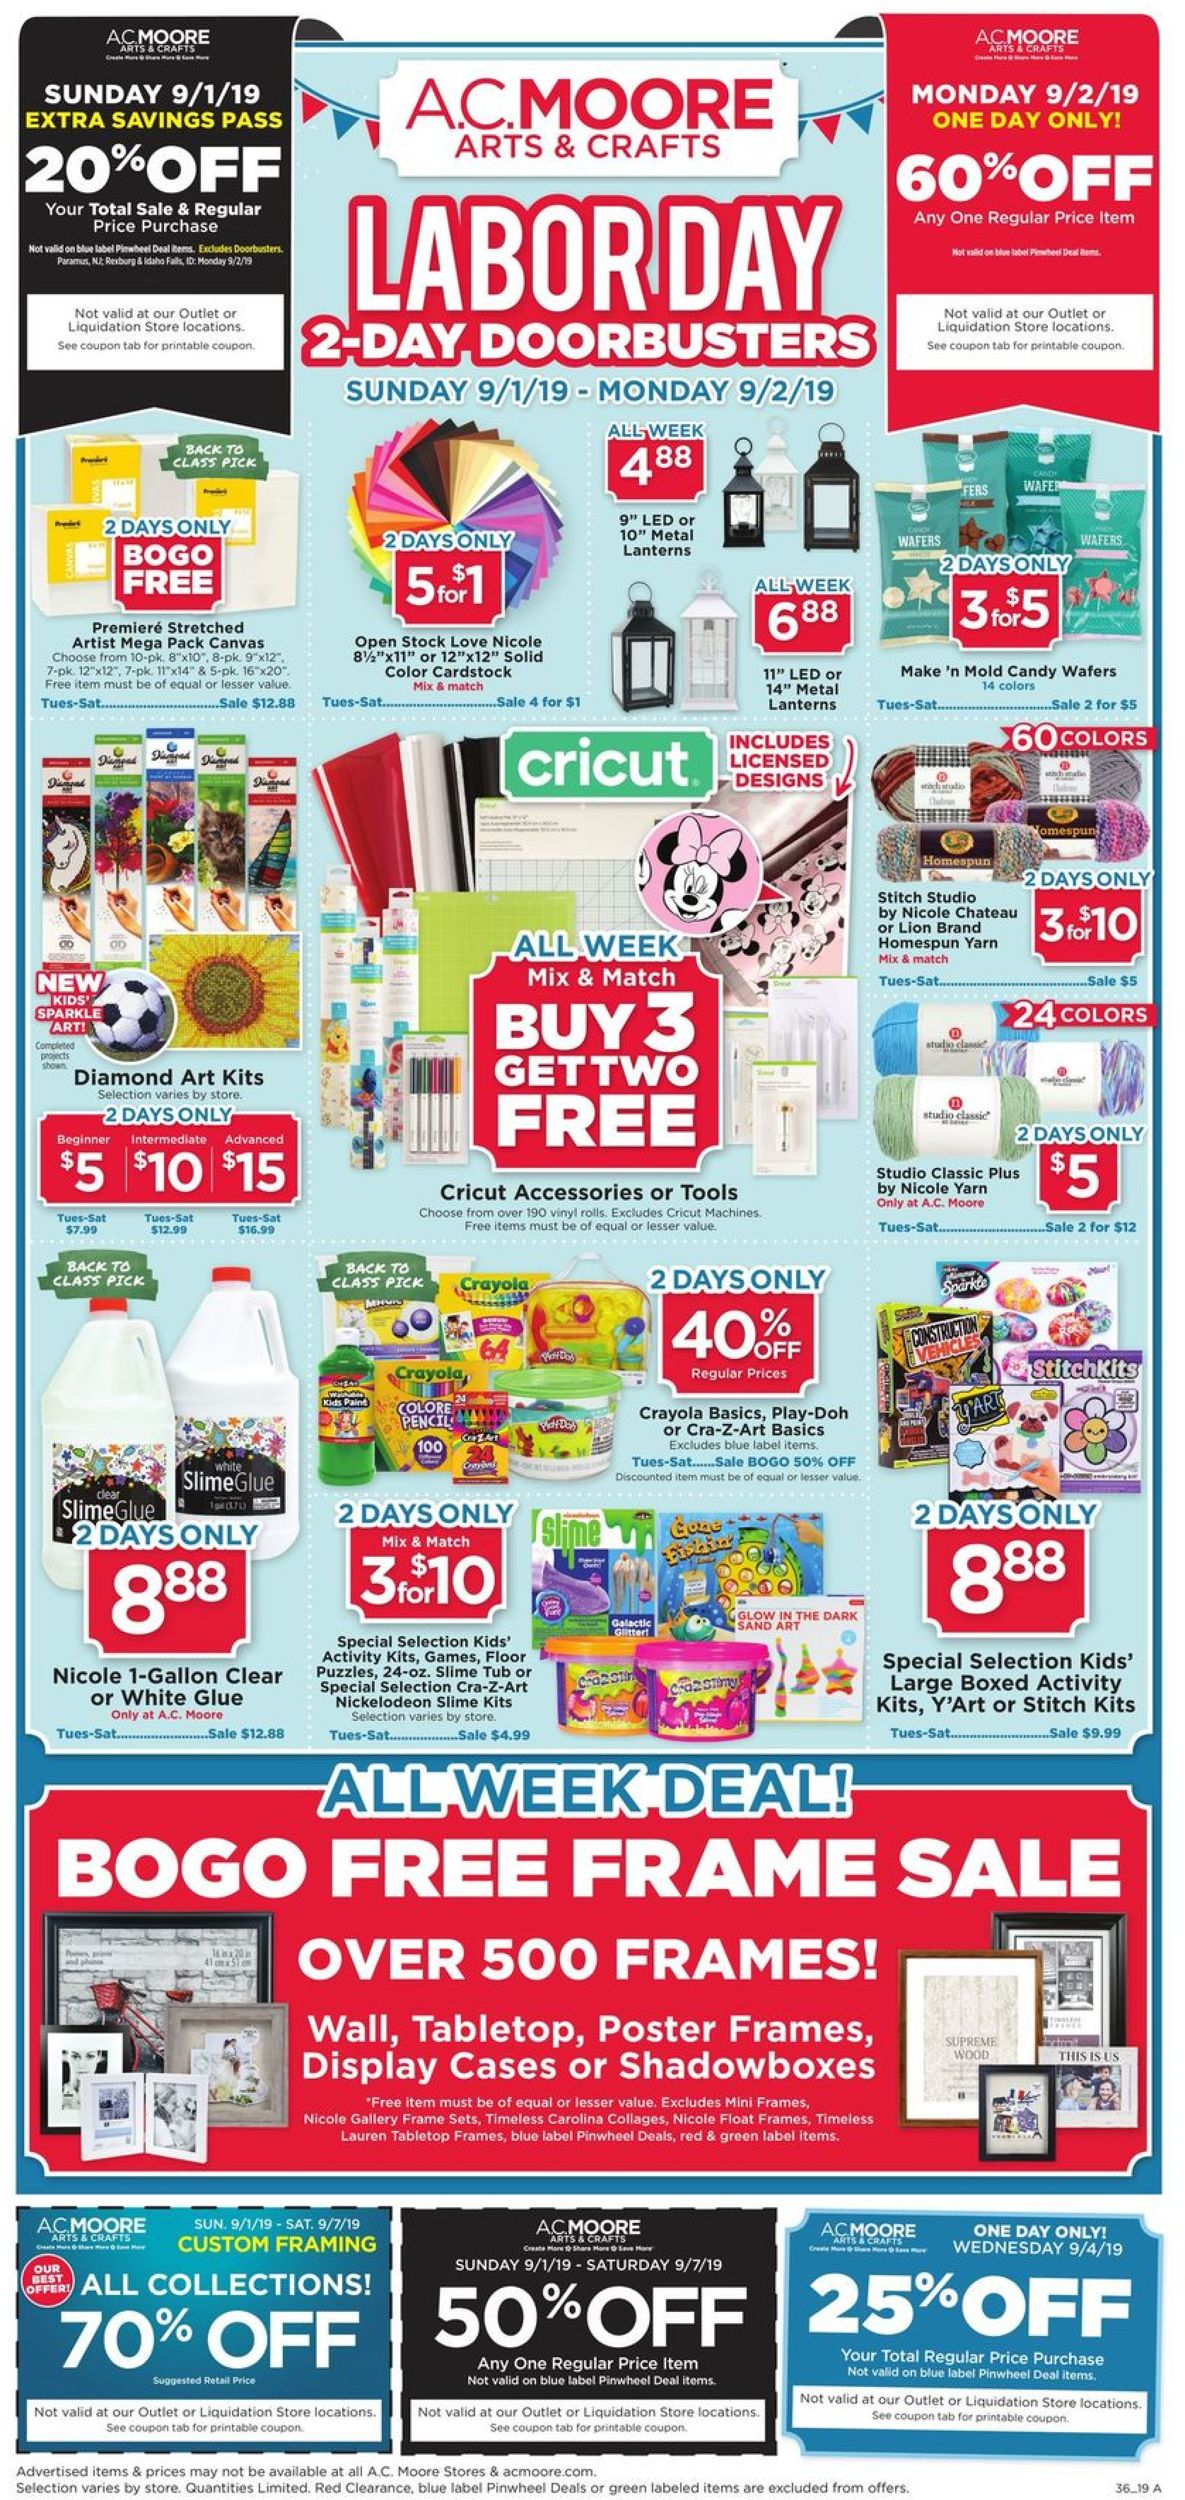 picture regarding Ac Moore Printable Coupon named A.C. Moore Present weekly advertisement 09/01 - 09/07/2019 - continuous